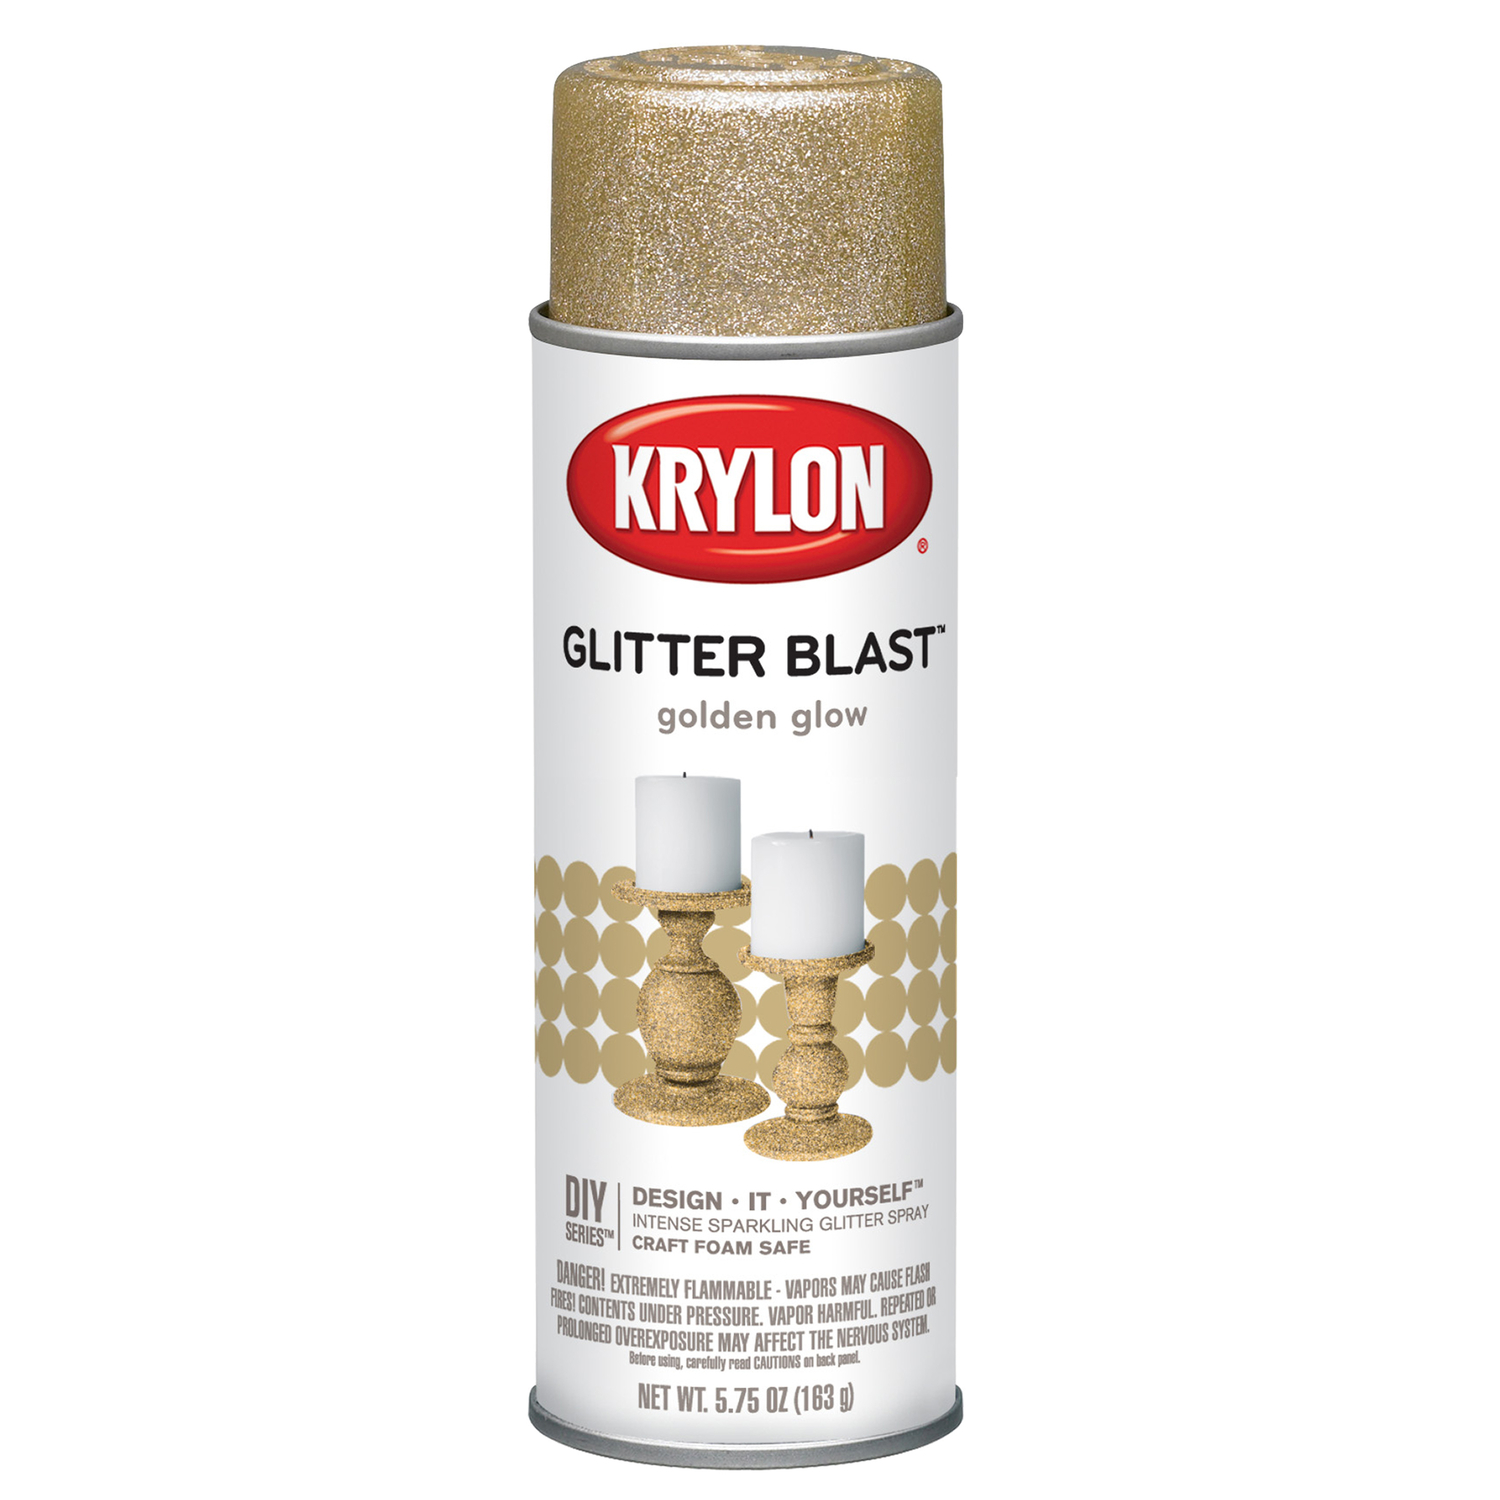 Krylon  Glitter Blast Spray Paint  5.75 oz. Golden Glow